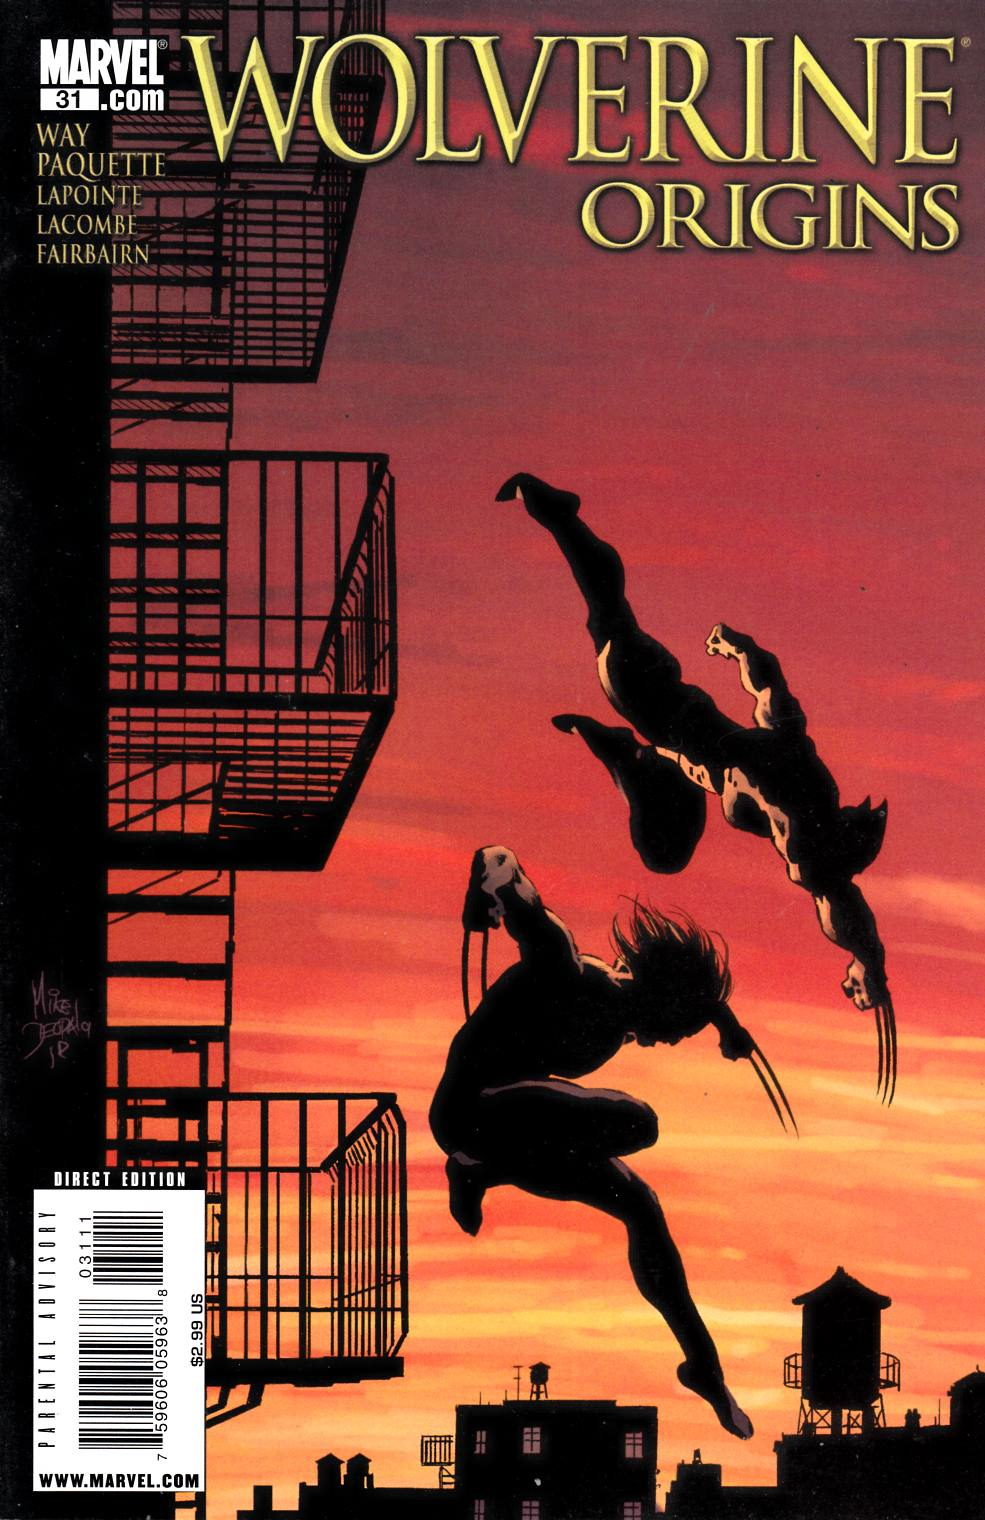 Wolverine Origins #31 Very Fine (8.0) [Marvel Comic] THUMBNAIL